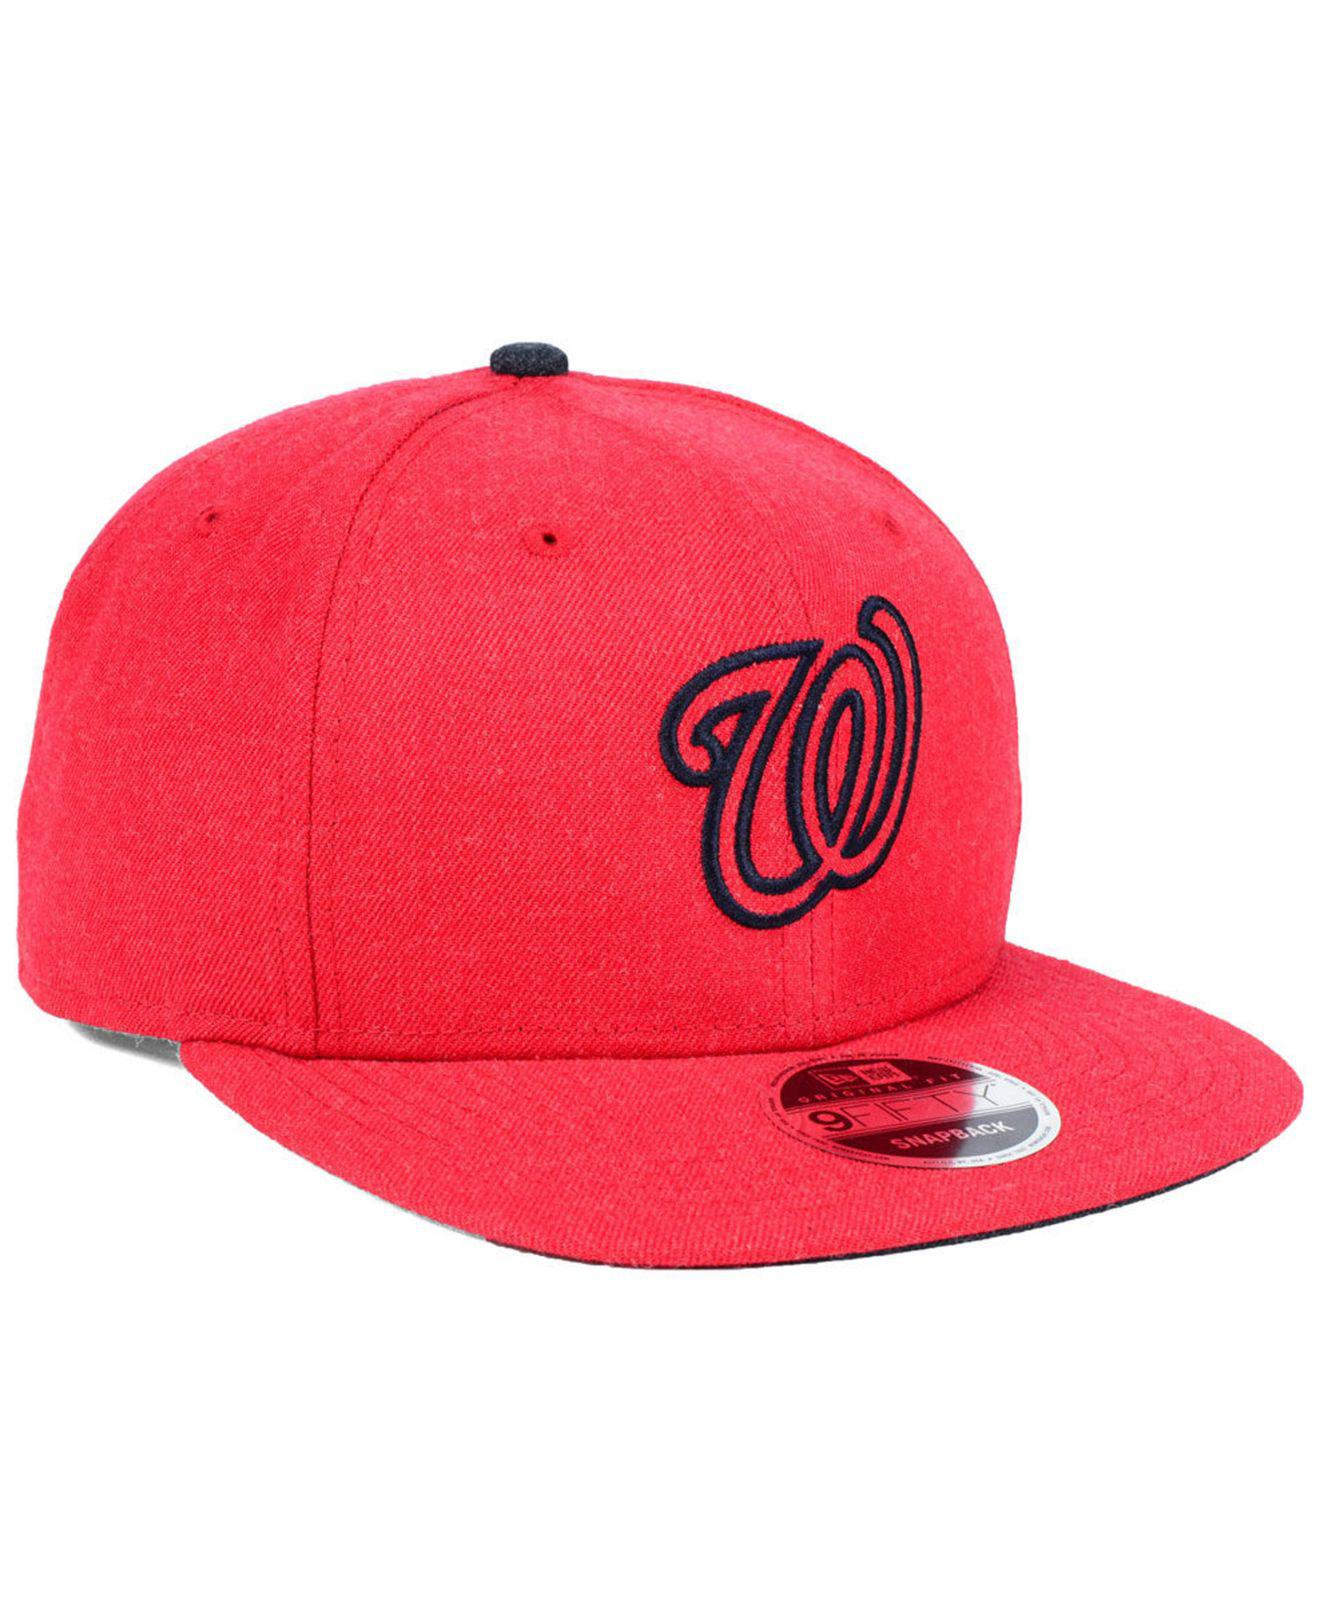 cheap for discount 67048 da8d7 ... hot lyst ktz washington nationals heather hype 9fifty snapback cap in  c910f 97f75